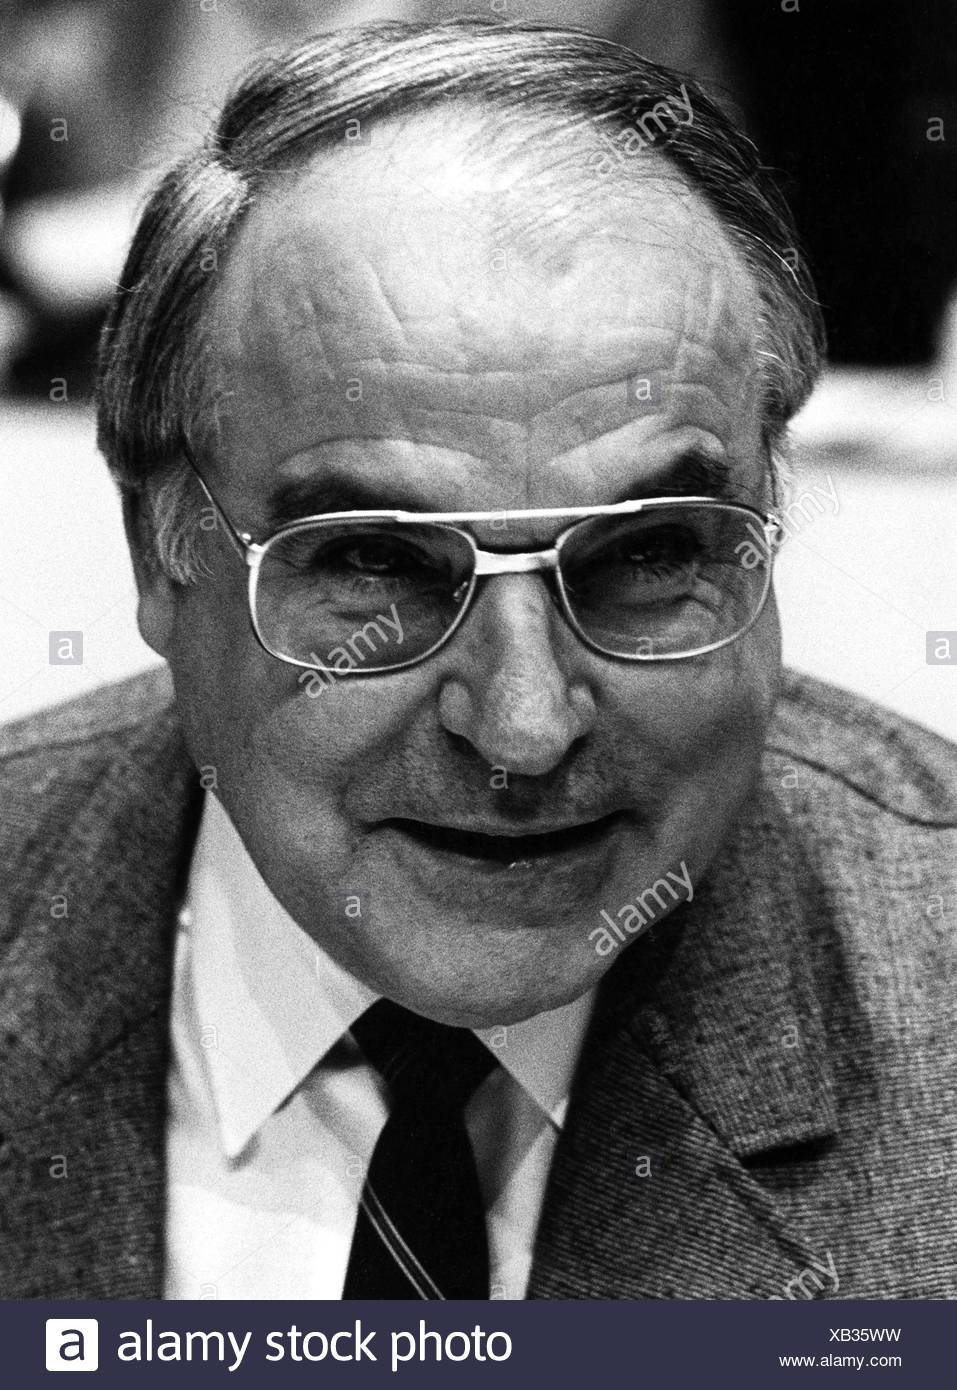 Kohl, Helmut, * 3.4.1930, German politician (CDU), Federal Chancellor 4.10.1982 - 26.10.1998, portrait, at meeting of the Junge Union, Berlin 23.- 24.11.1984, , Additional-Rights-Clearances-NA - Stock Image